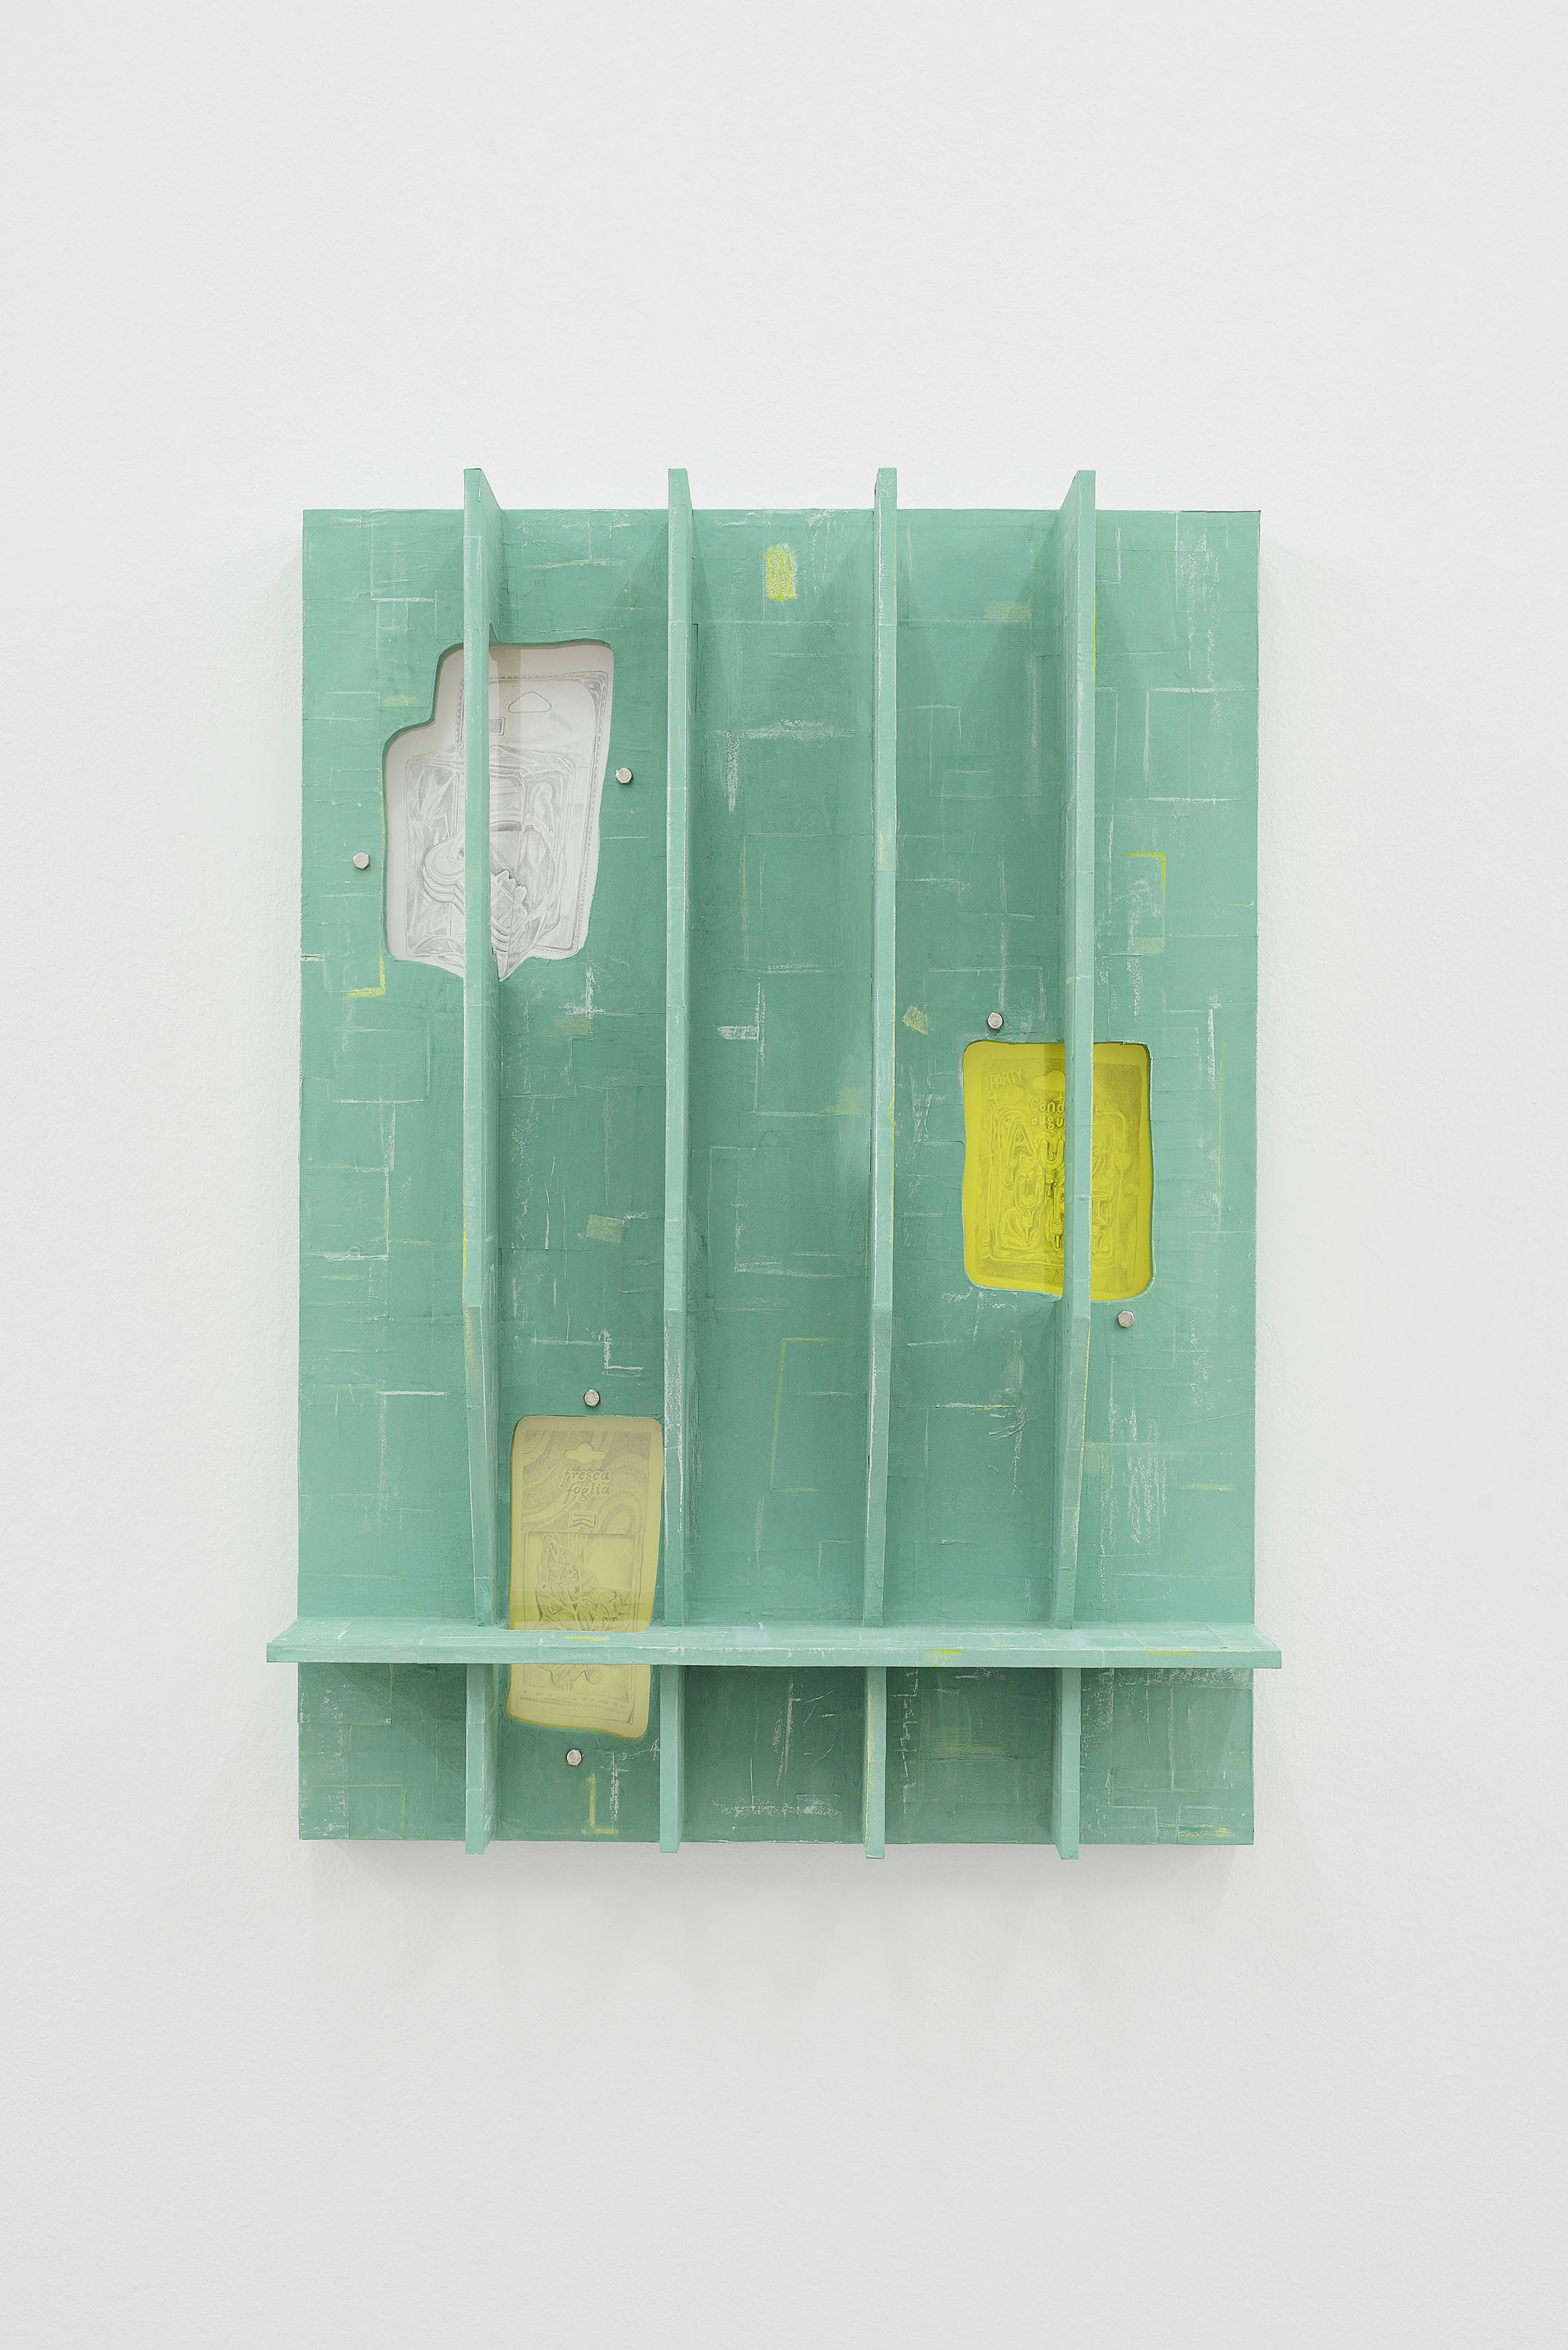 Milly Peck, Facciata I, 2021. Painted paper mâché on MDF, chalk, coloured pencil, perspex, cellophane, pencil on paper, bolts, magnets. 84 x 60 x 18 cm. Photographer: Roberto Apa.